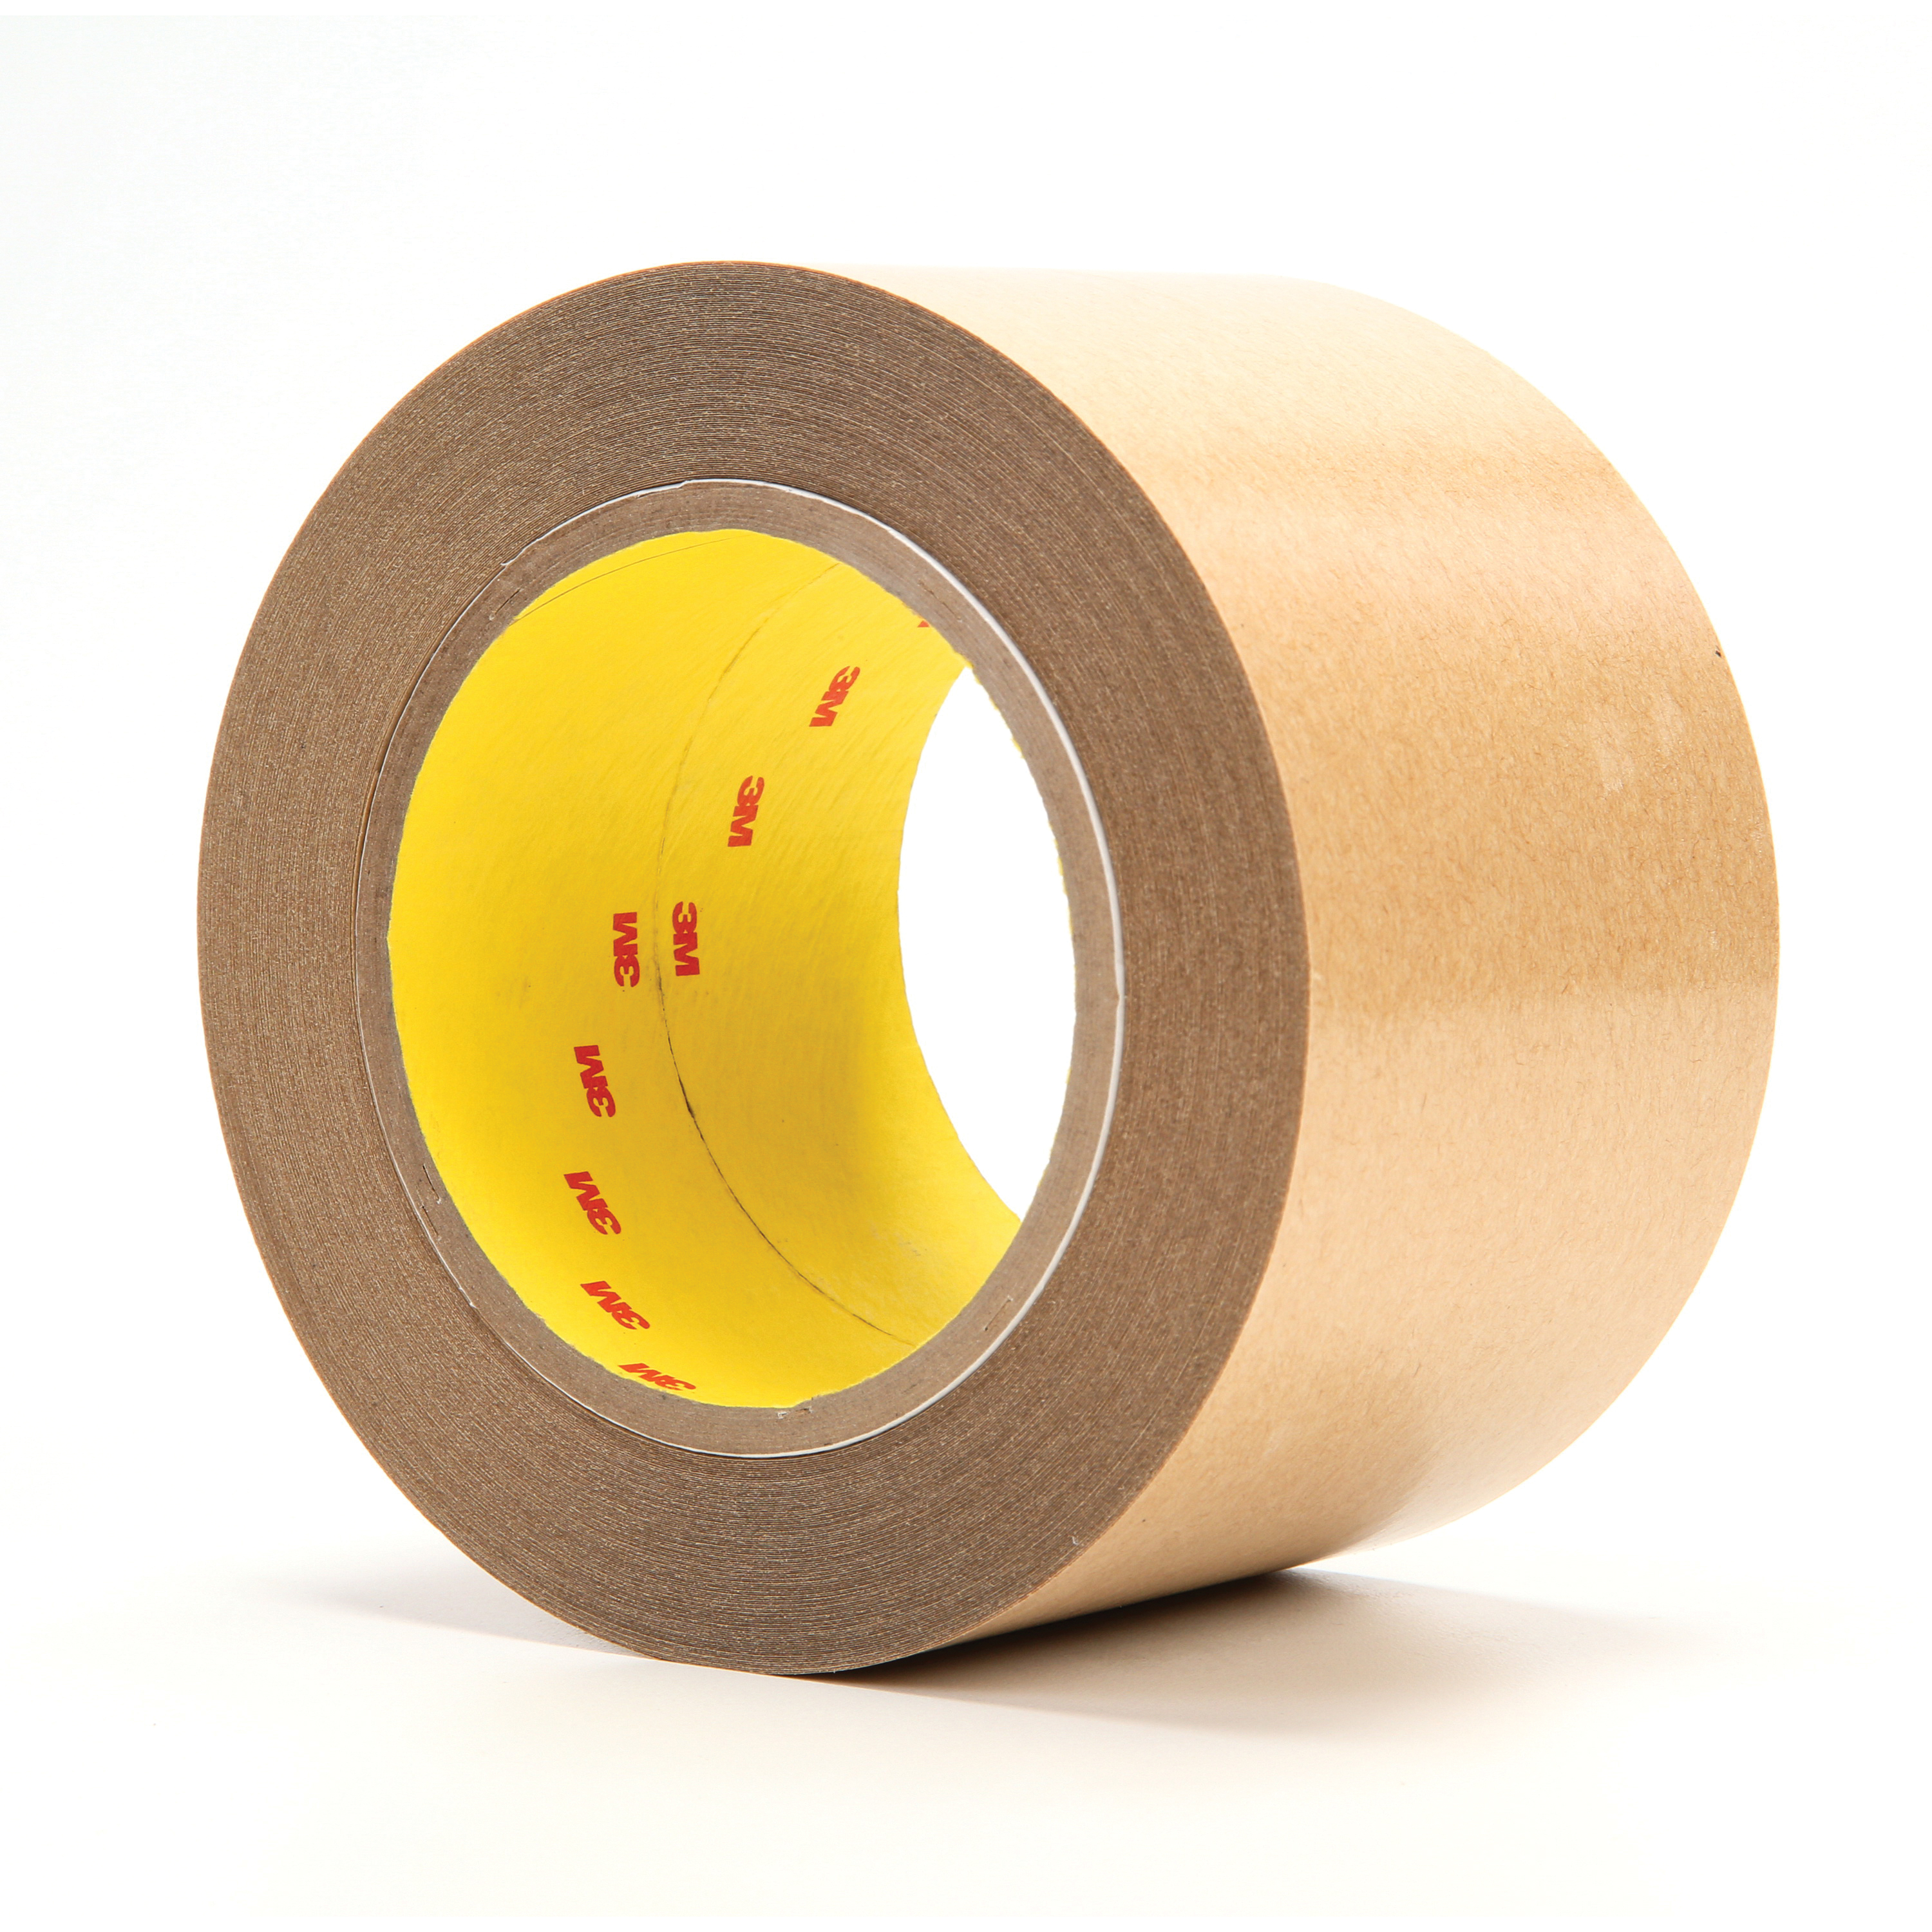 3M™ 021200-03910 415 Non-Repulpable Double Coated Splicing Tape, 36 yd L x 3 in W, 4 mil THK, 400HT Acrylic Adhesive, Polyester Film Backing, Clear